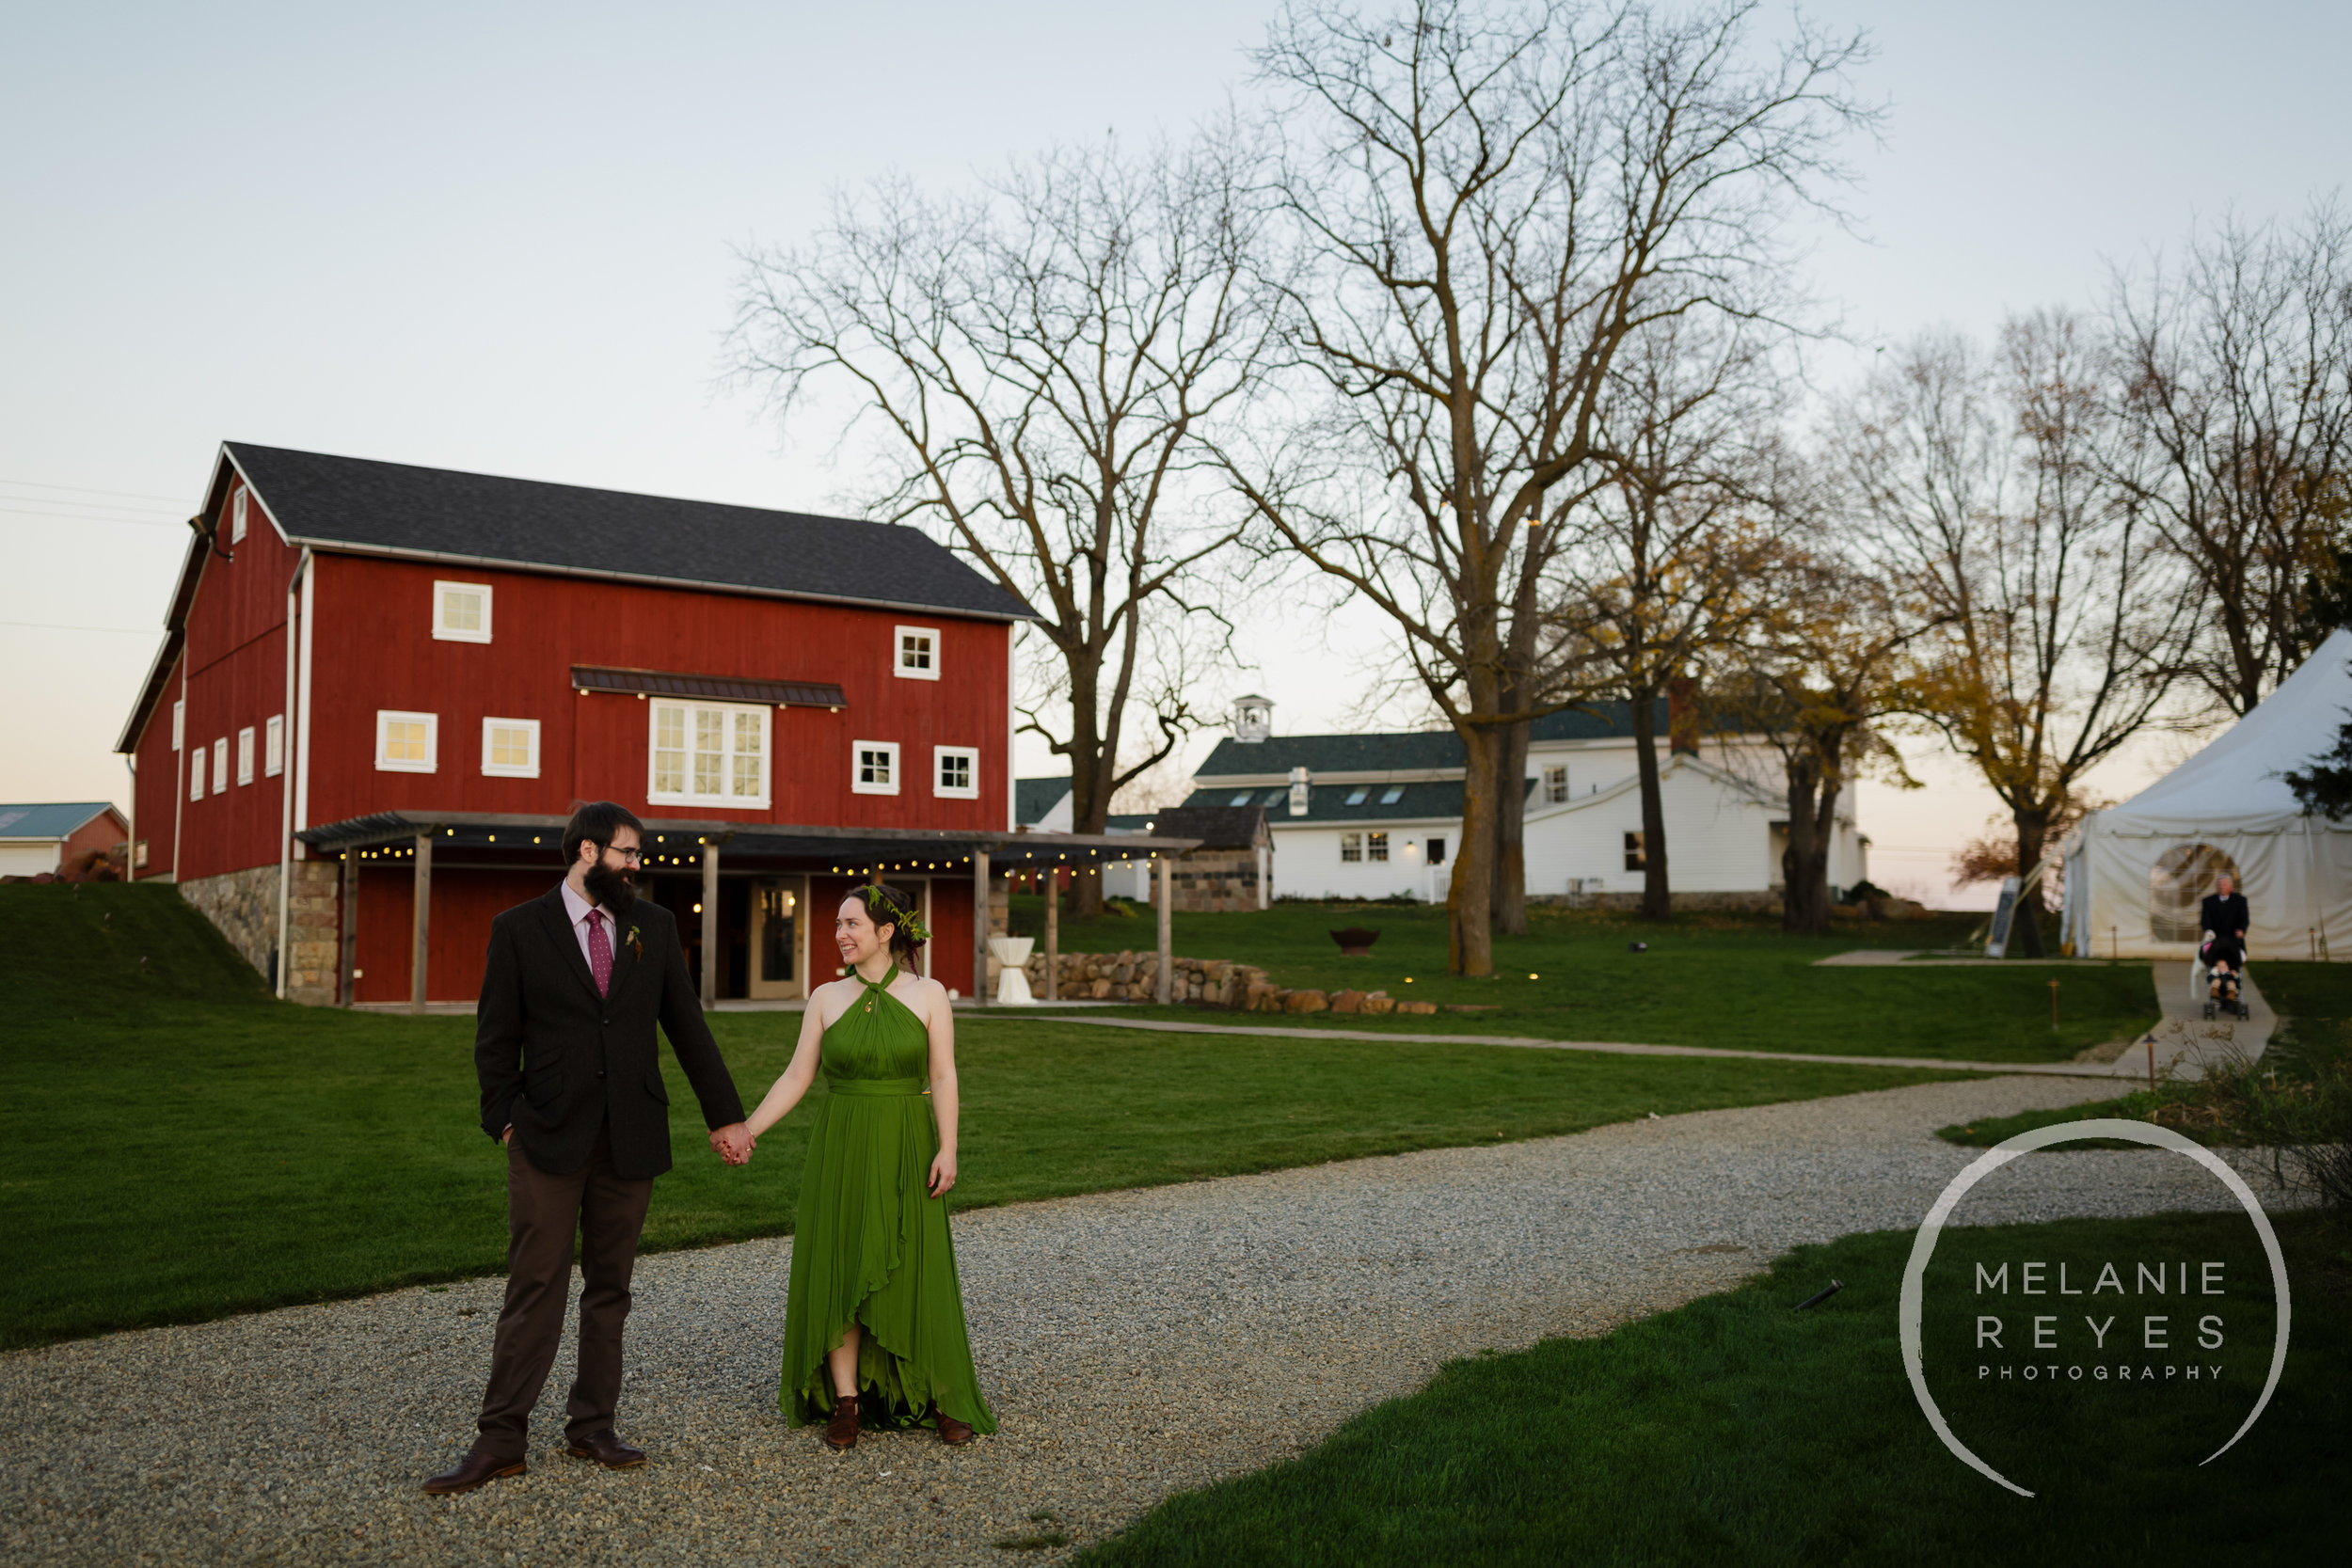 zingermans_cornman_farms_wedding_melanie_reyes_photography_050.JPG